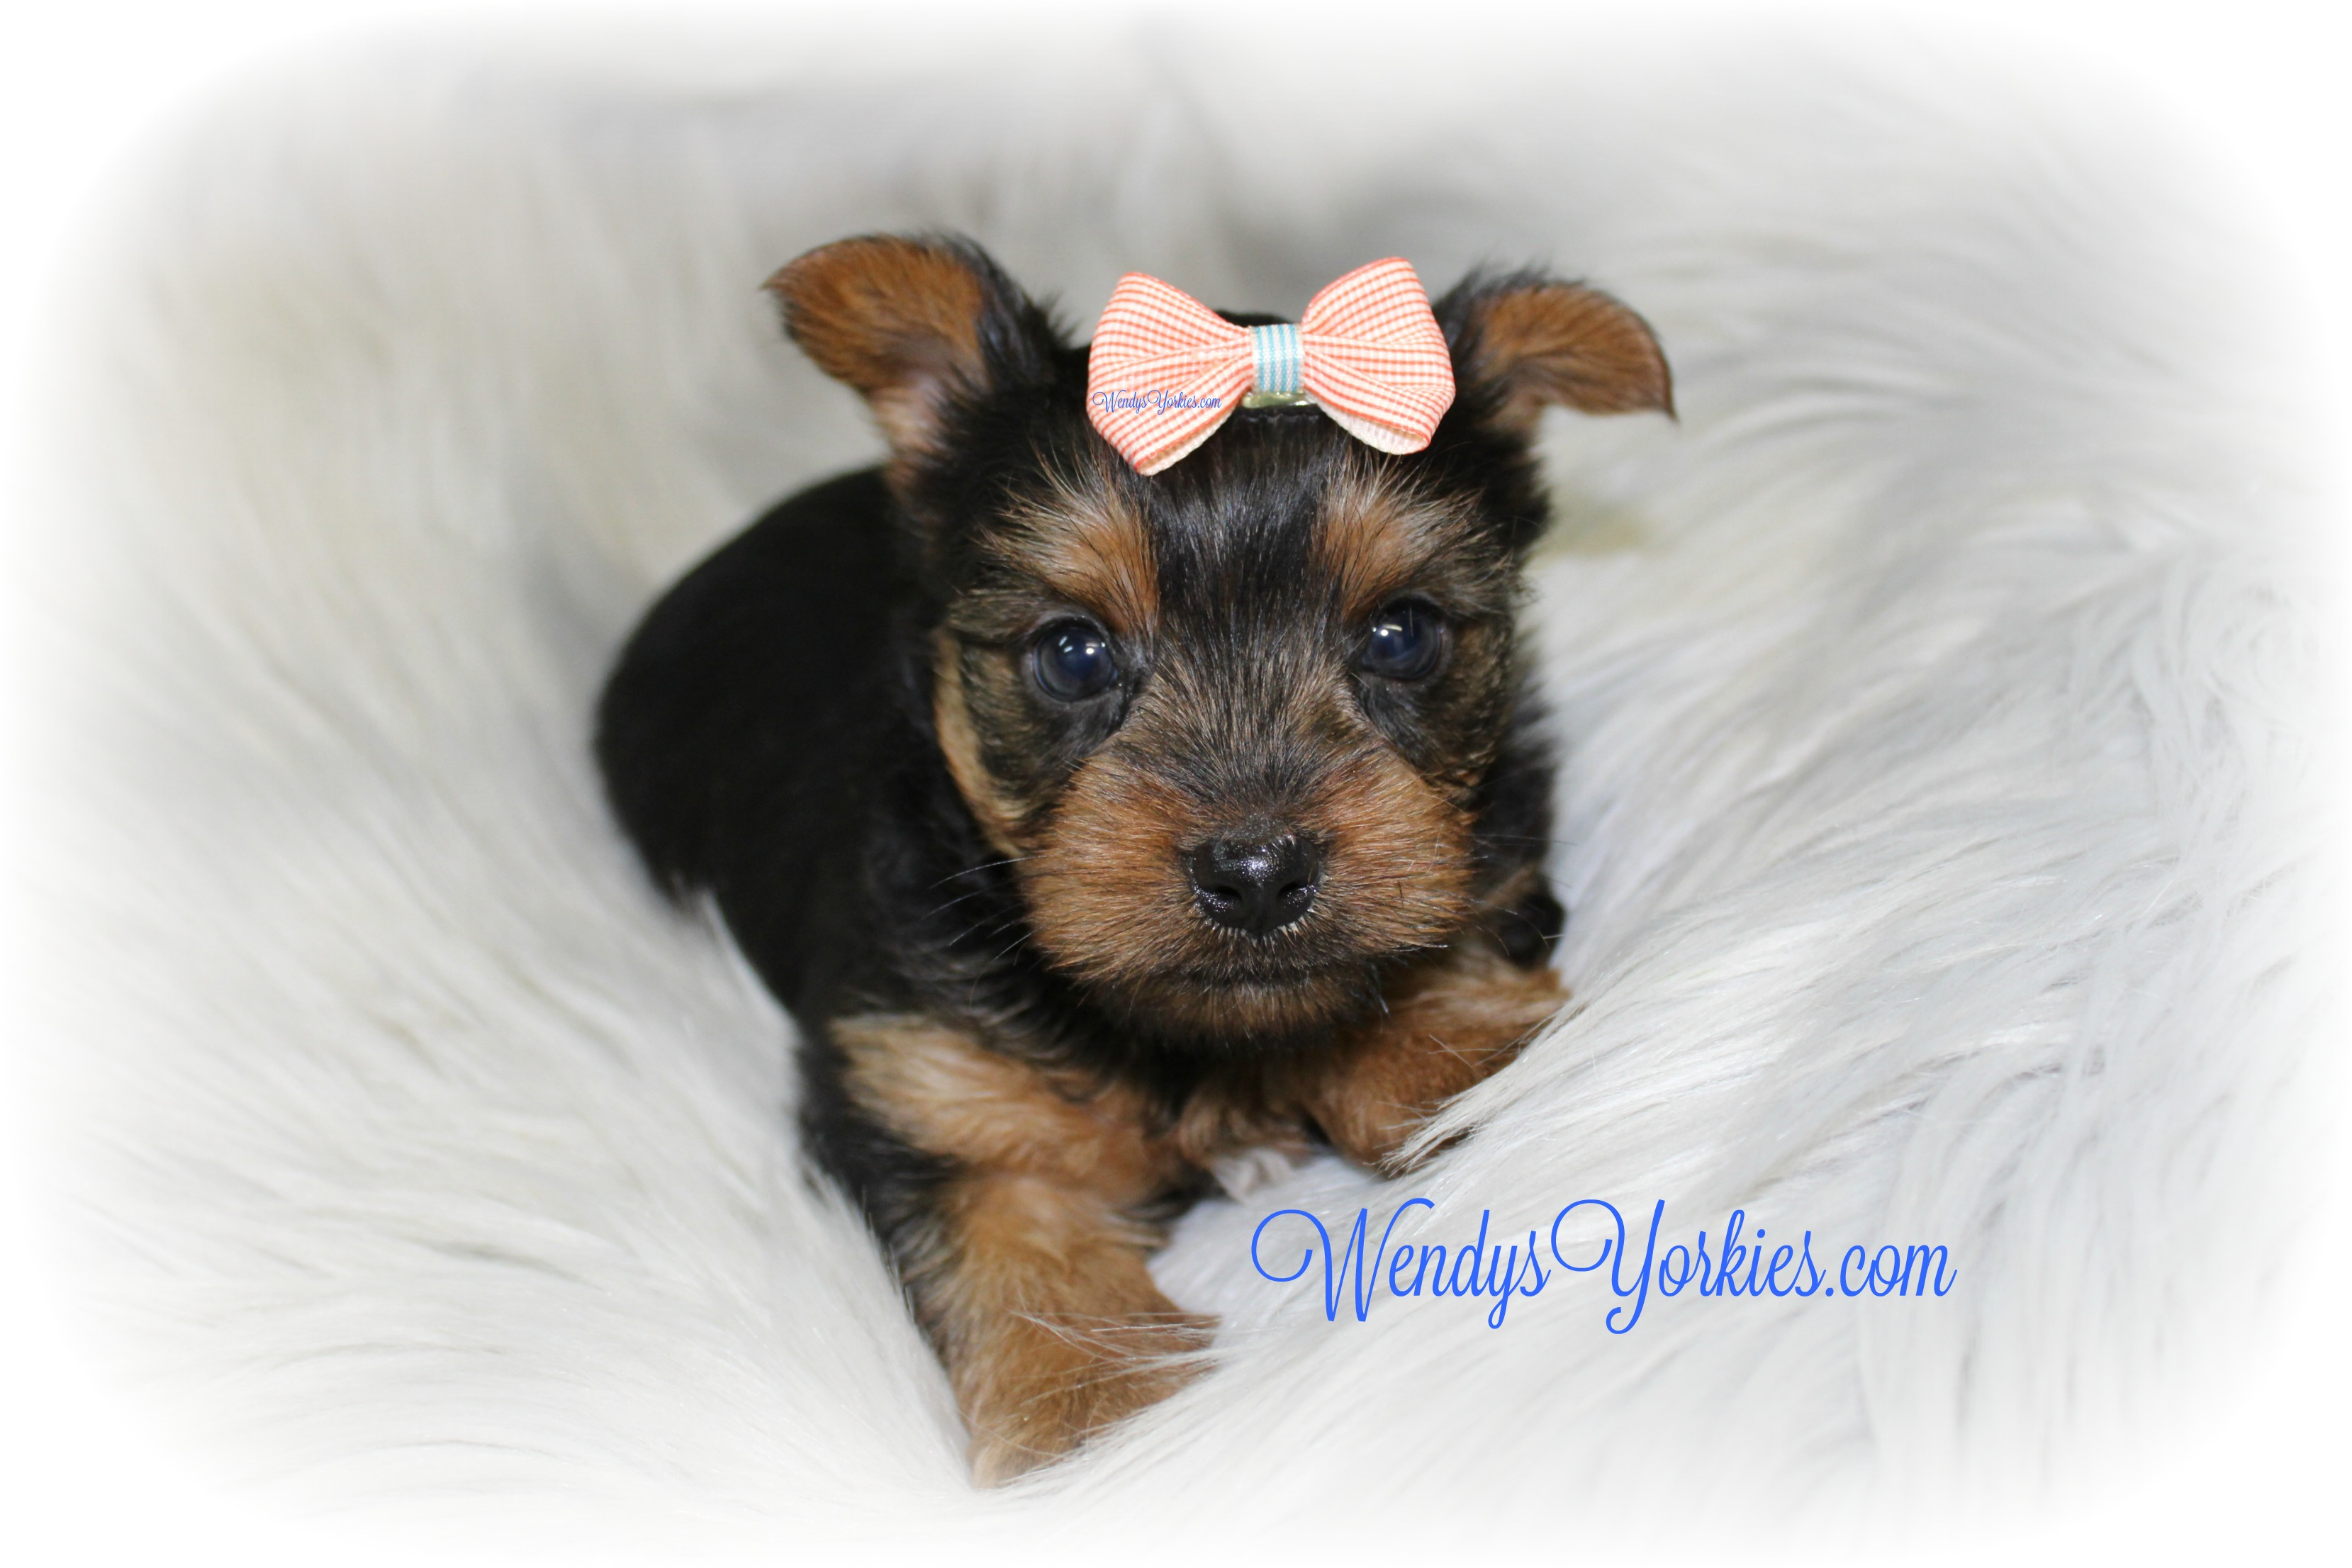 Teacup Male Yorkie puppy for sale, WendysYorkies.com, TG m1